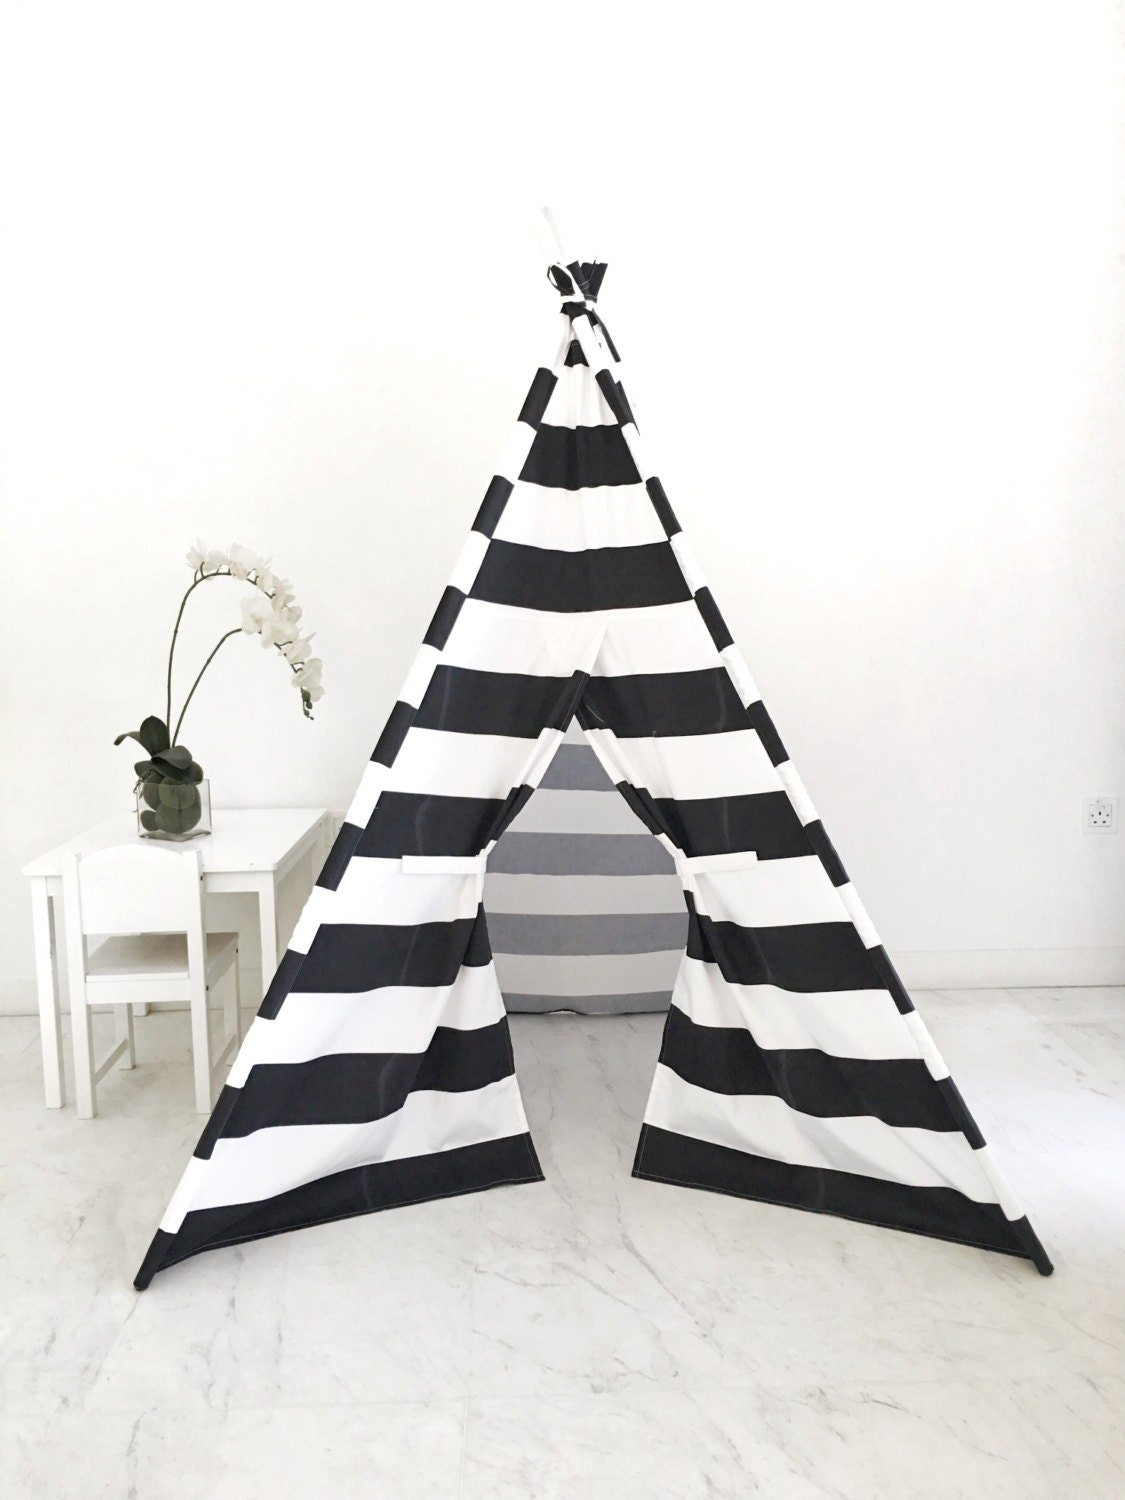 Kids Play Tent Handmade in Black and White Stripe Designer Cotton Fabric.  sc 1 st  Domestic Objects & Kids Play Tent Handmade in Black and White Stripe Designer Cotton ...